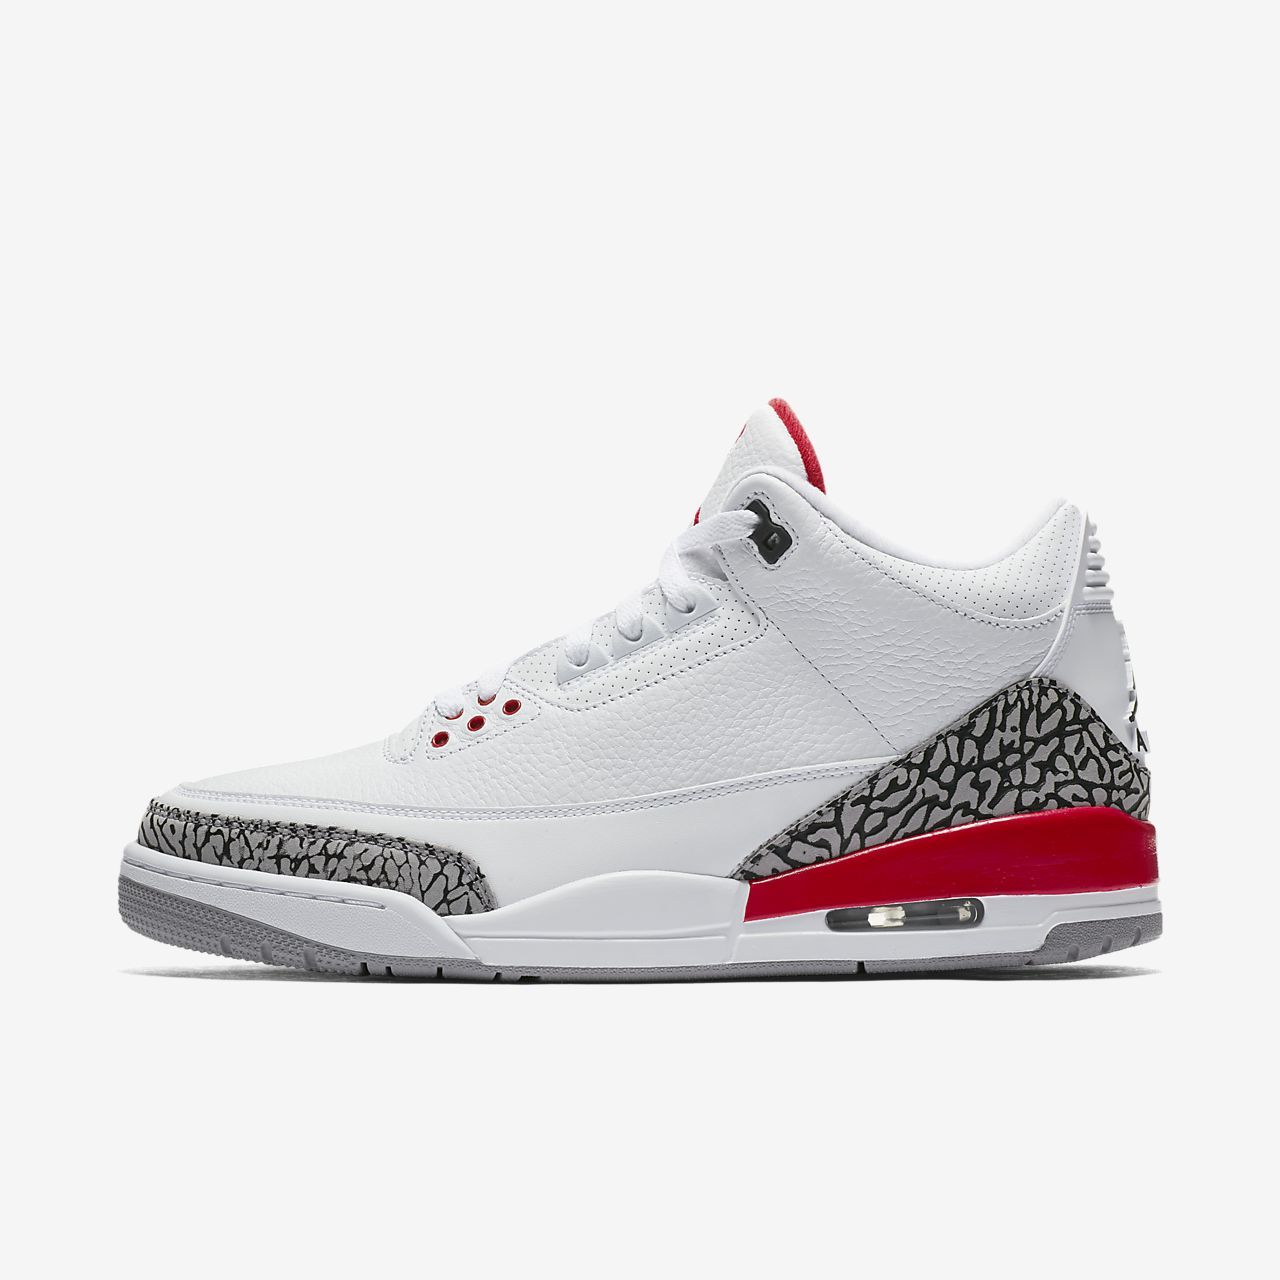 check out f1bb2 a571a Air Jordan 3 Retro Men's Shoe